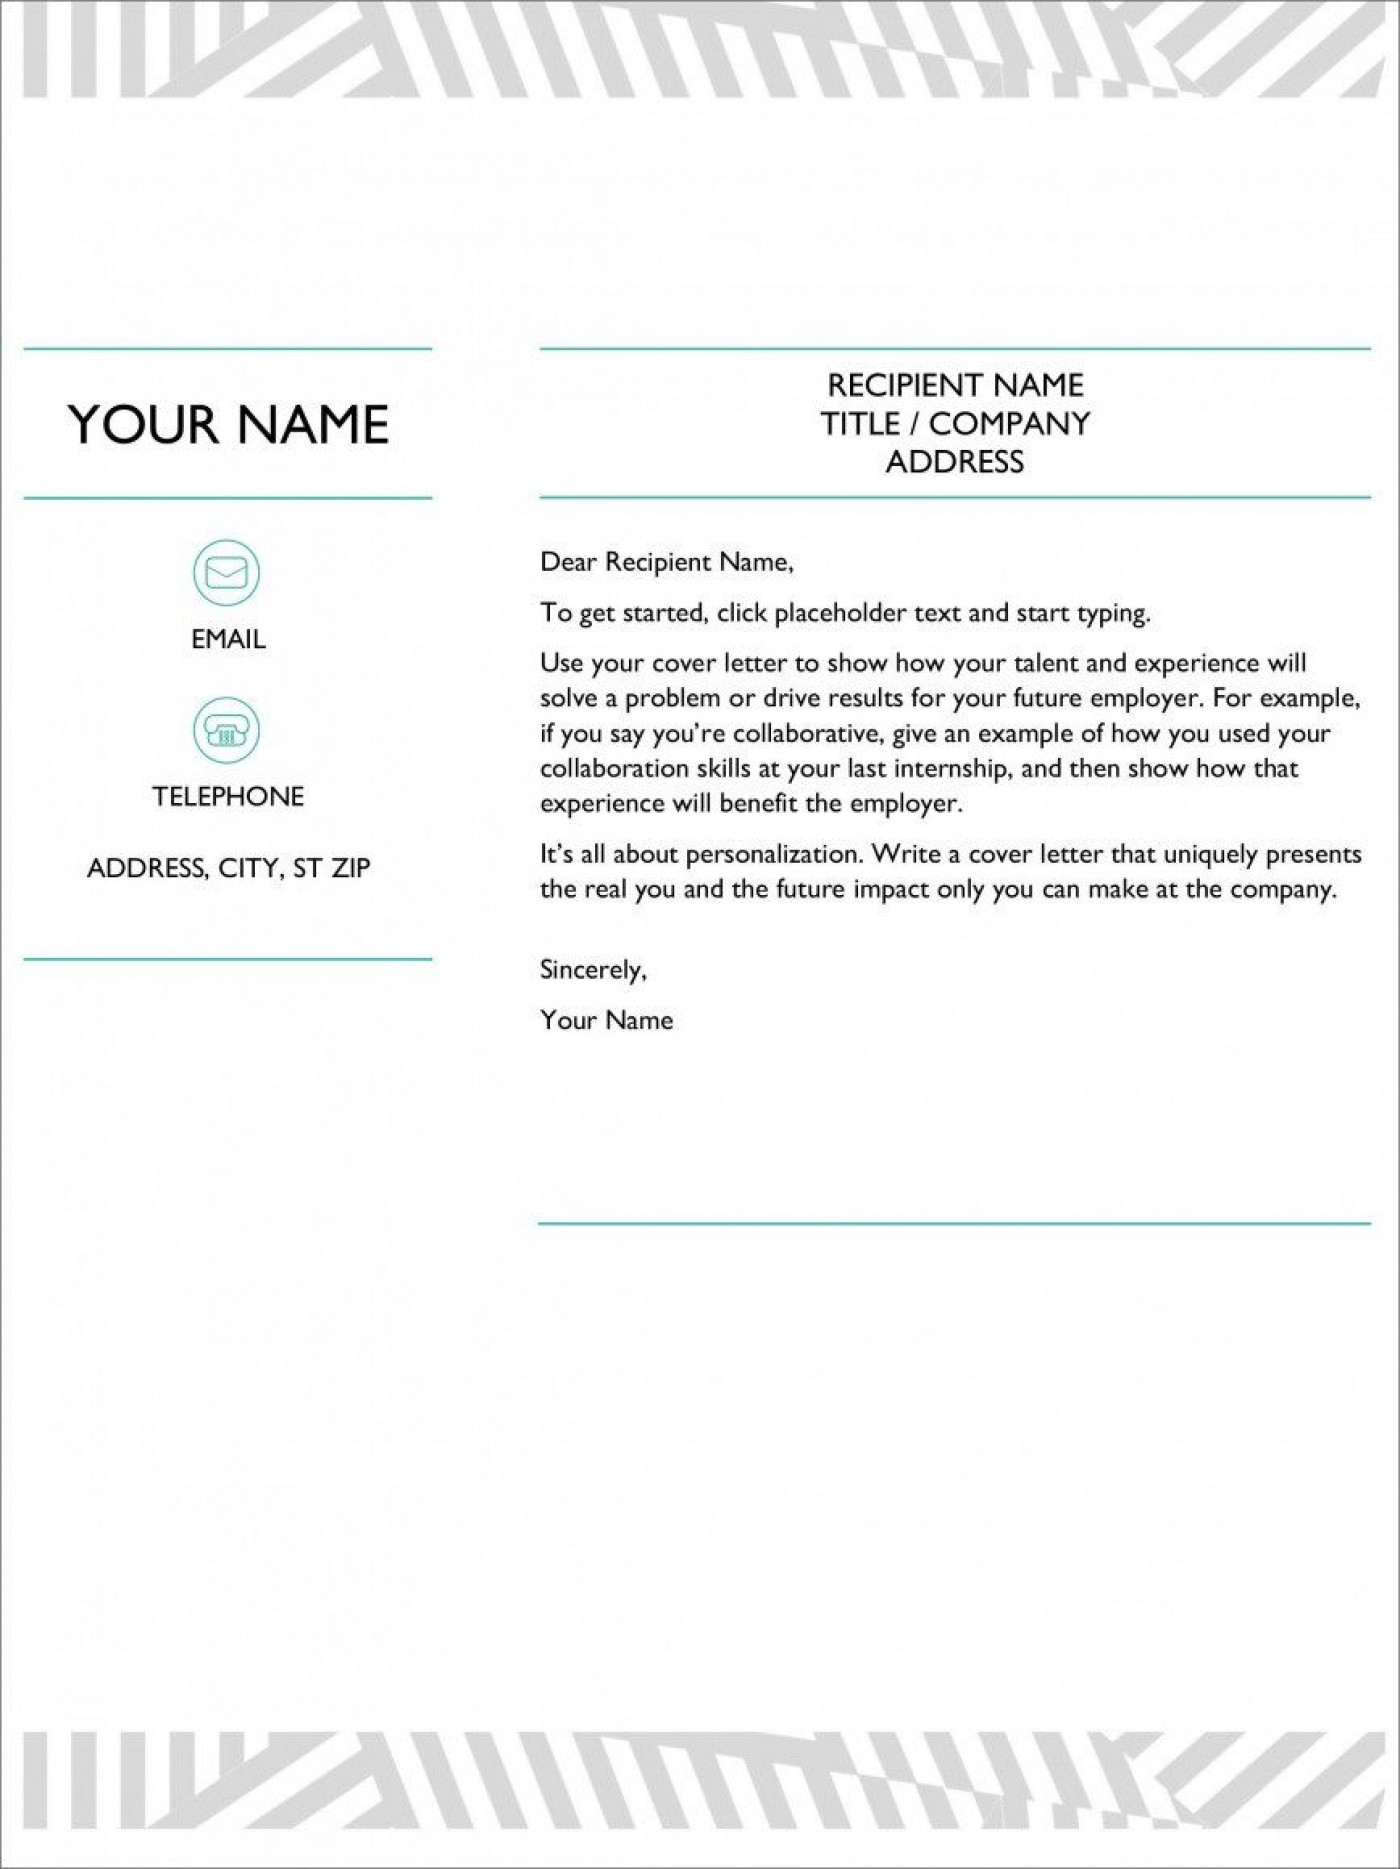 009 Astounding Resume Cover Letter Template Microsoft Word Example 1400